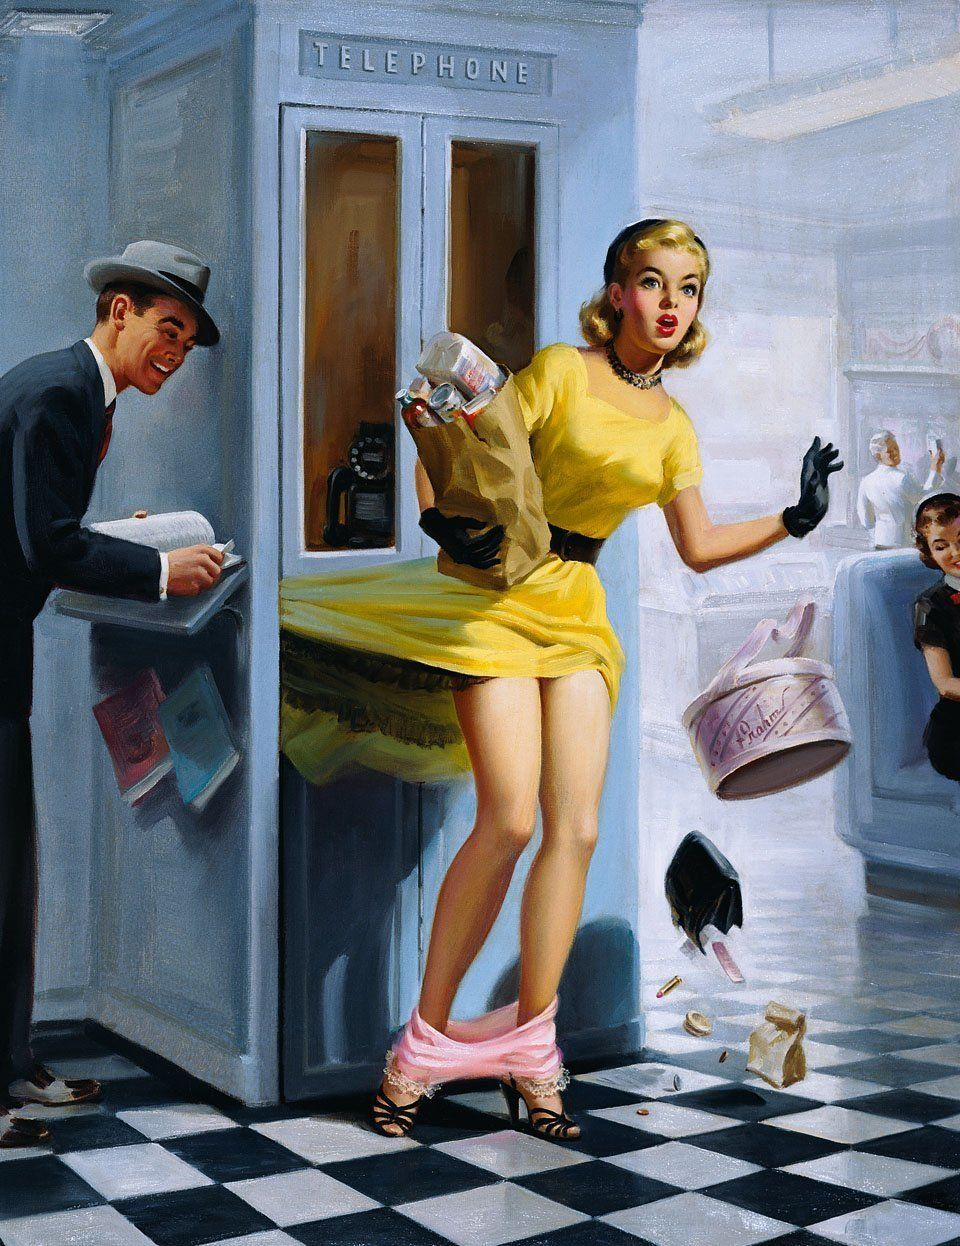 By Art Frahm